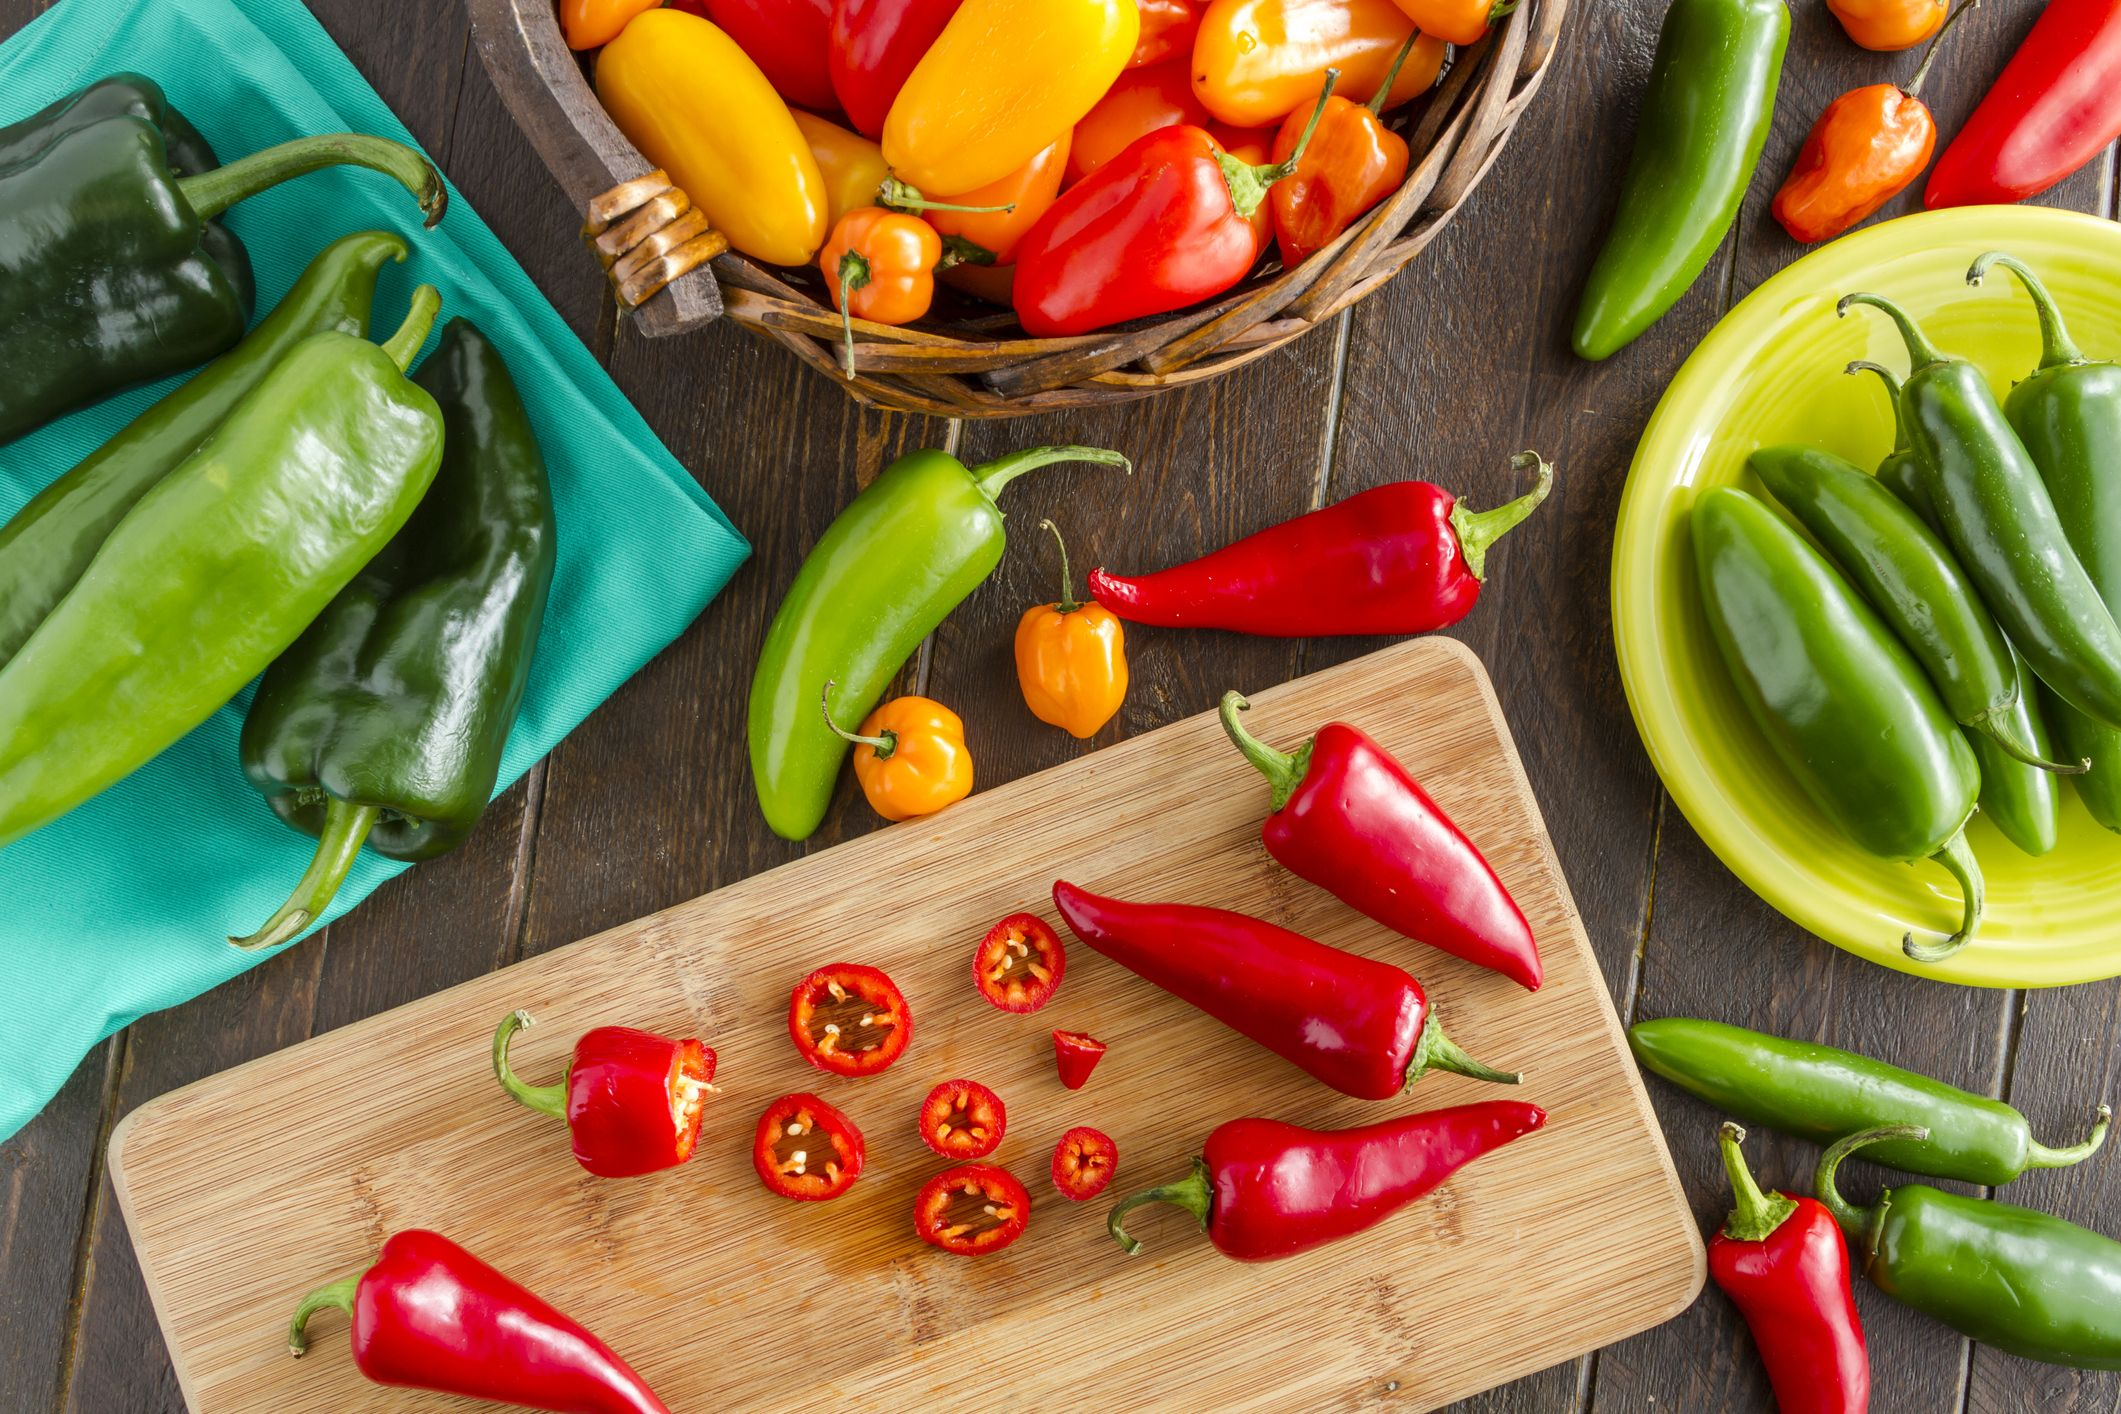 Types of Peppers - 10 Different Kinds of Peppers and Their Uses